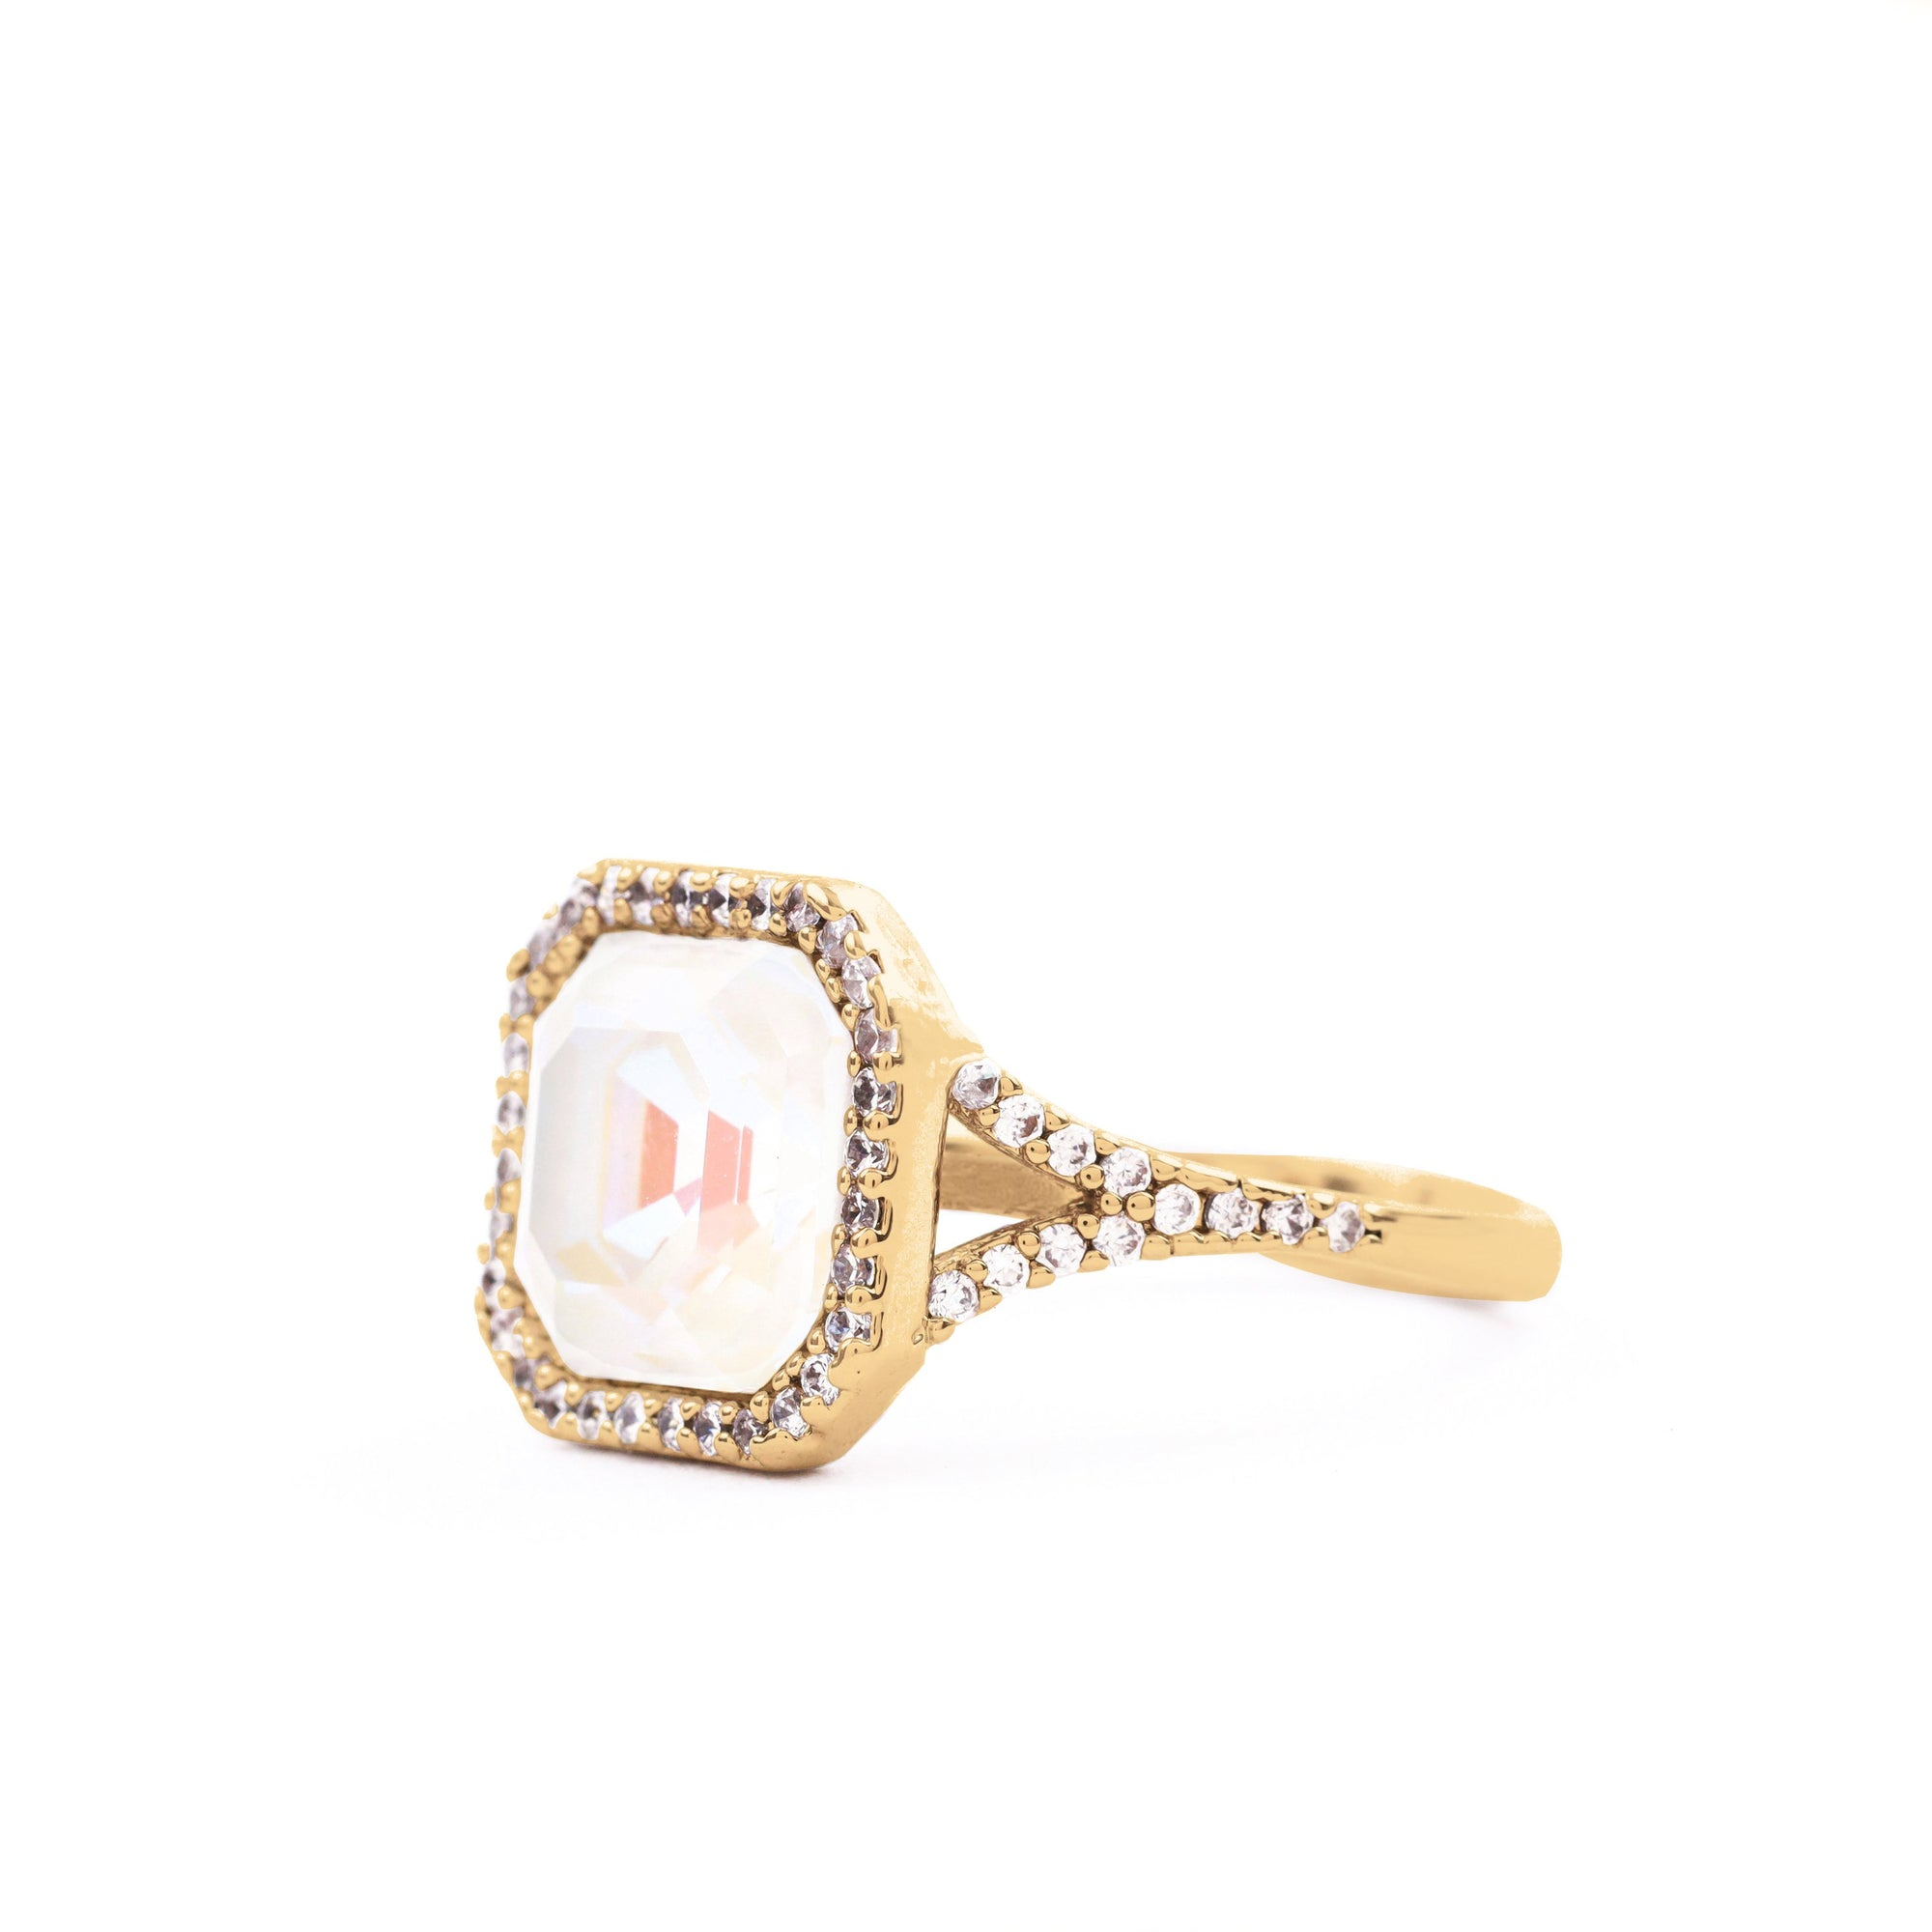 LORRAINE HALO RING GOLD LIGHT GREY DELITE RING - IMPERIAL FOREVER